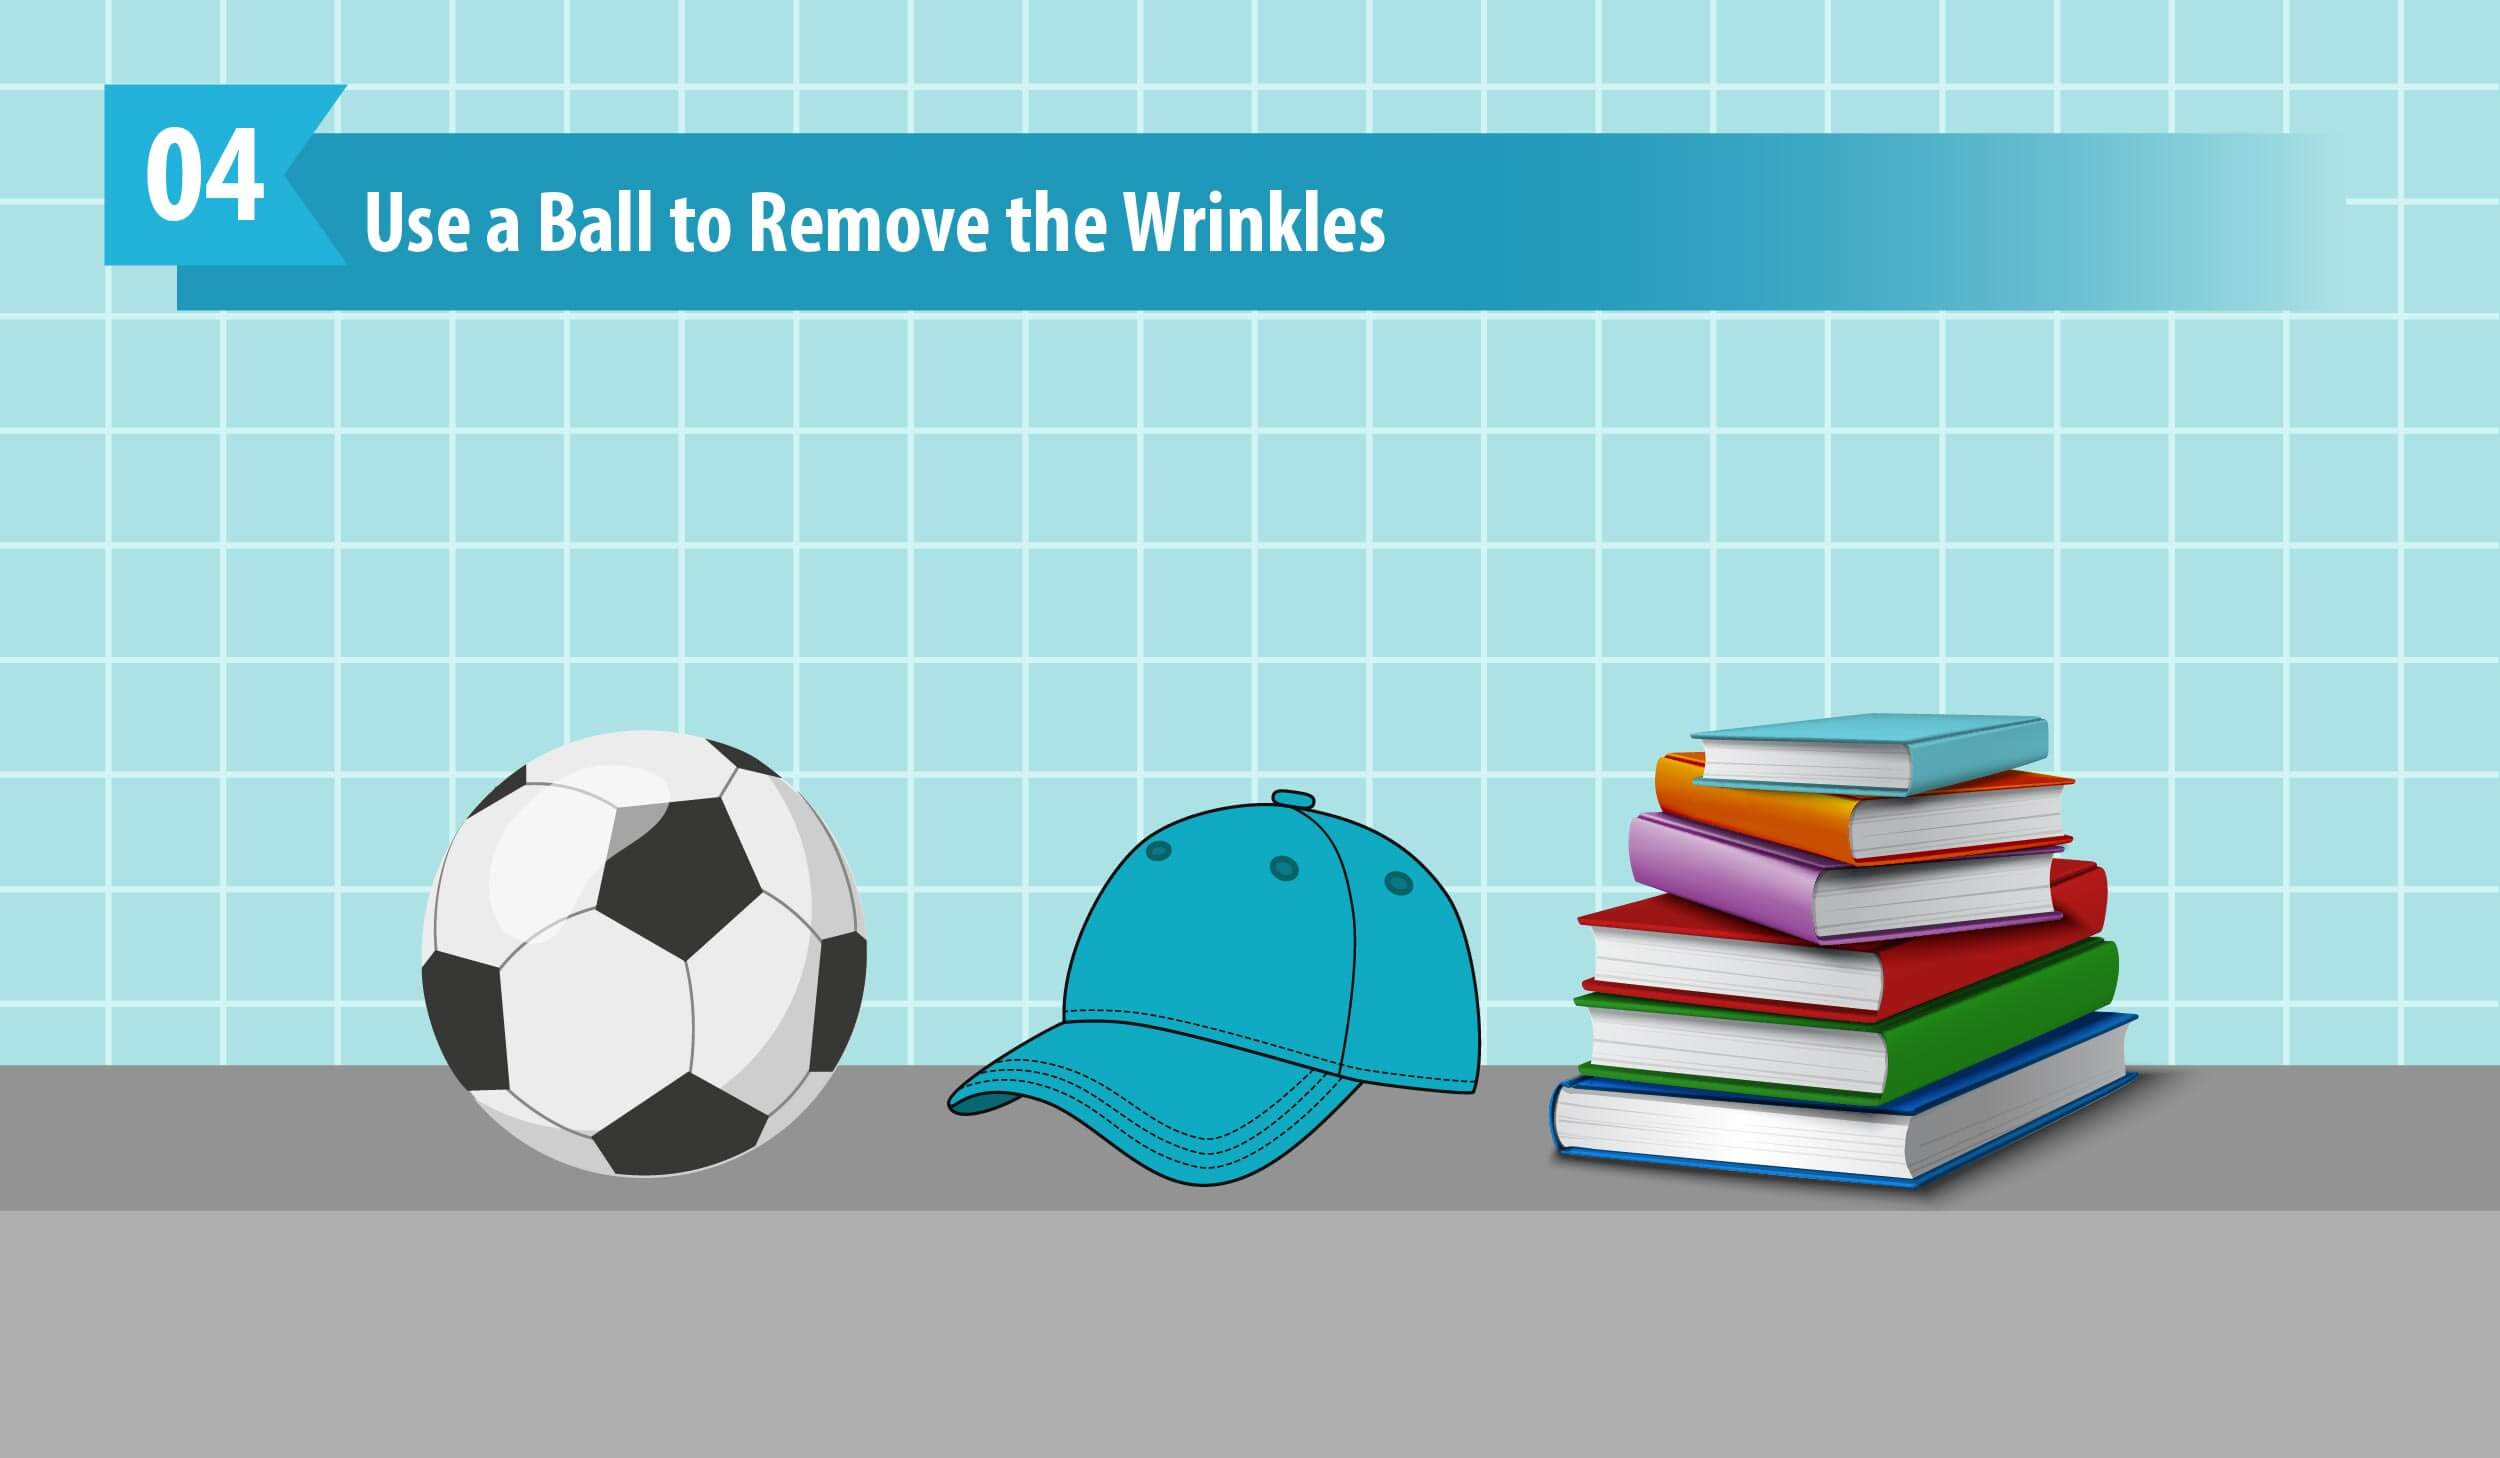 Use a Ball to Remove the Wrinkles